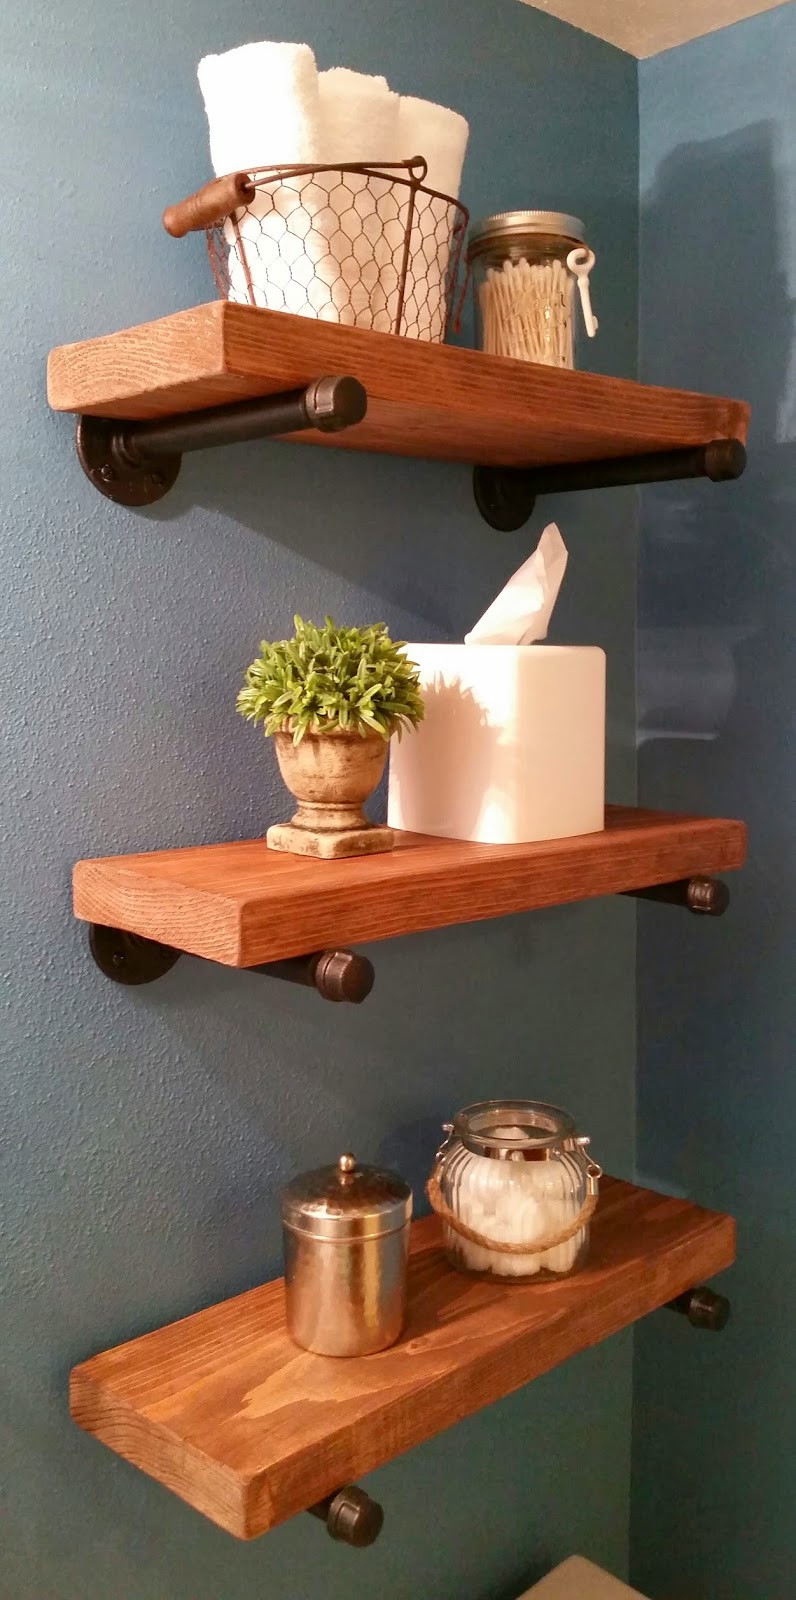 Best ideas about Industrial Pipe Shelving DIY . Save or Pin DIY Industrial Pipe Shelving Signed by Soden Now.